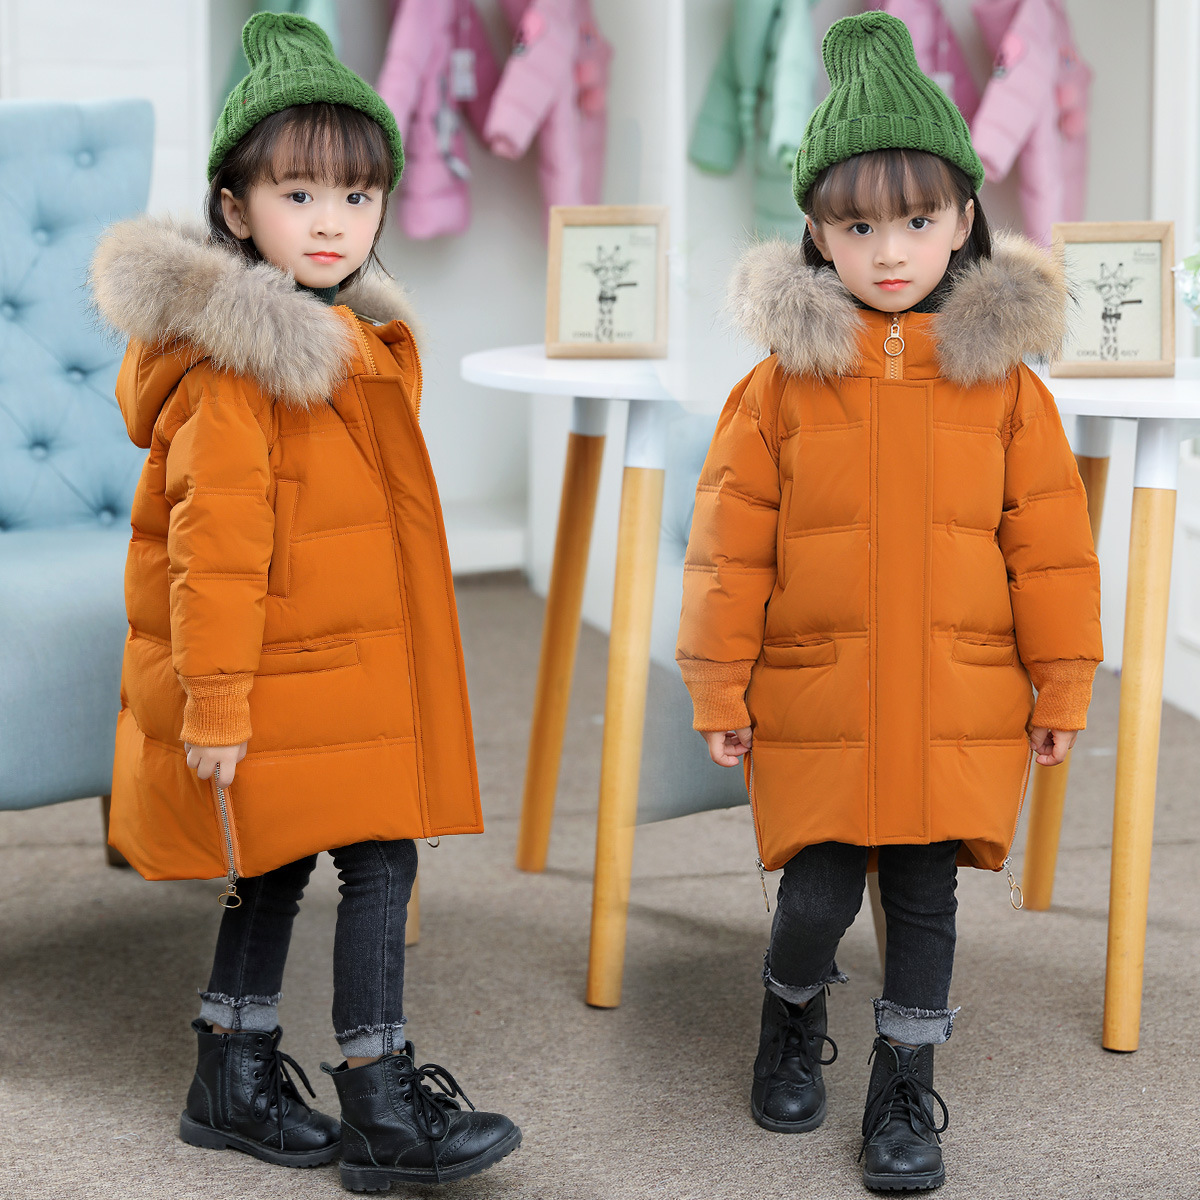 1-6 Years Kids Girls Winter Coat Thick Warm Girl Outwear Coat Down Jacket Natural Fur Hooded Children Snowsuit Long Parkas Z132 fashion girls winter down coat teenagers long down thick warm coat parkas fur collar hooded jackets clothing children snowsuit